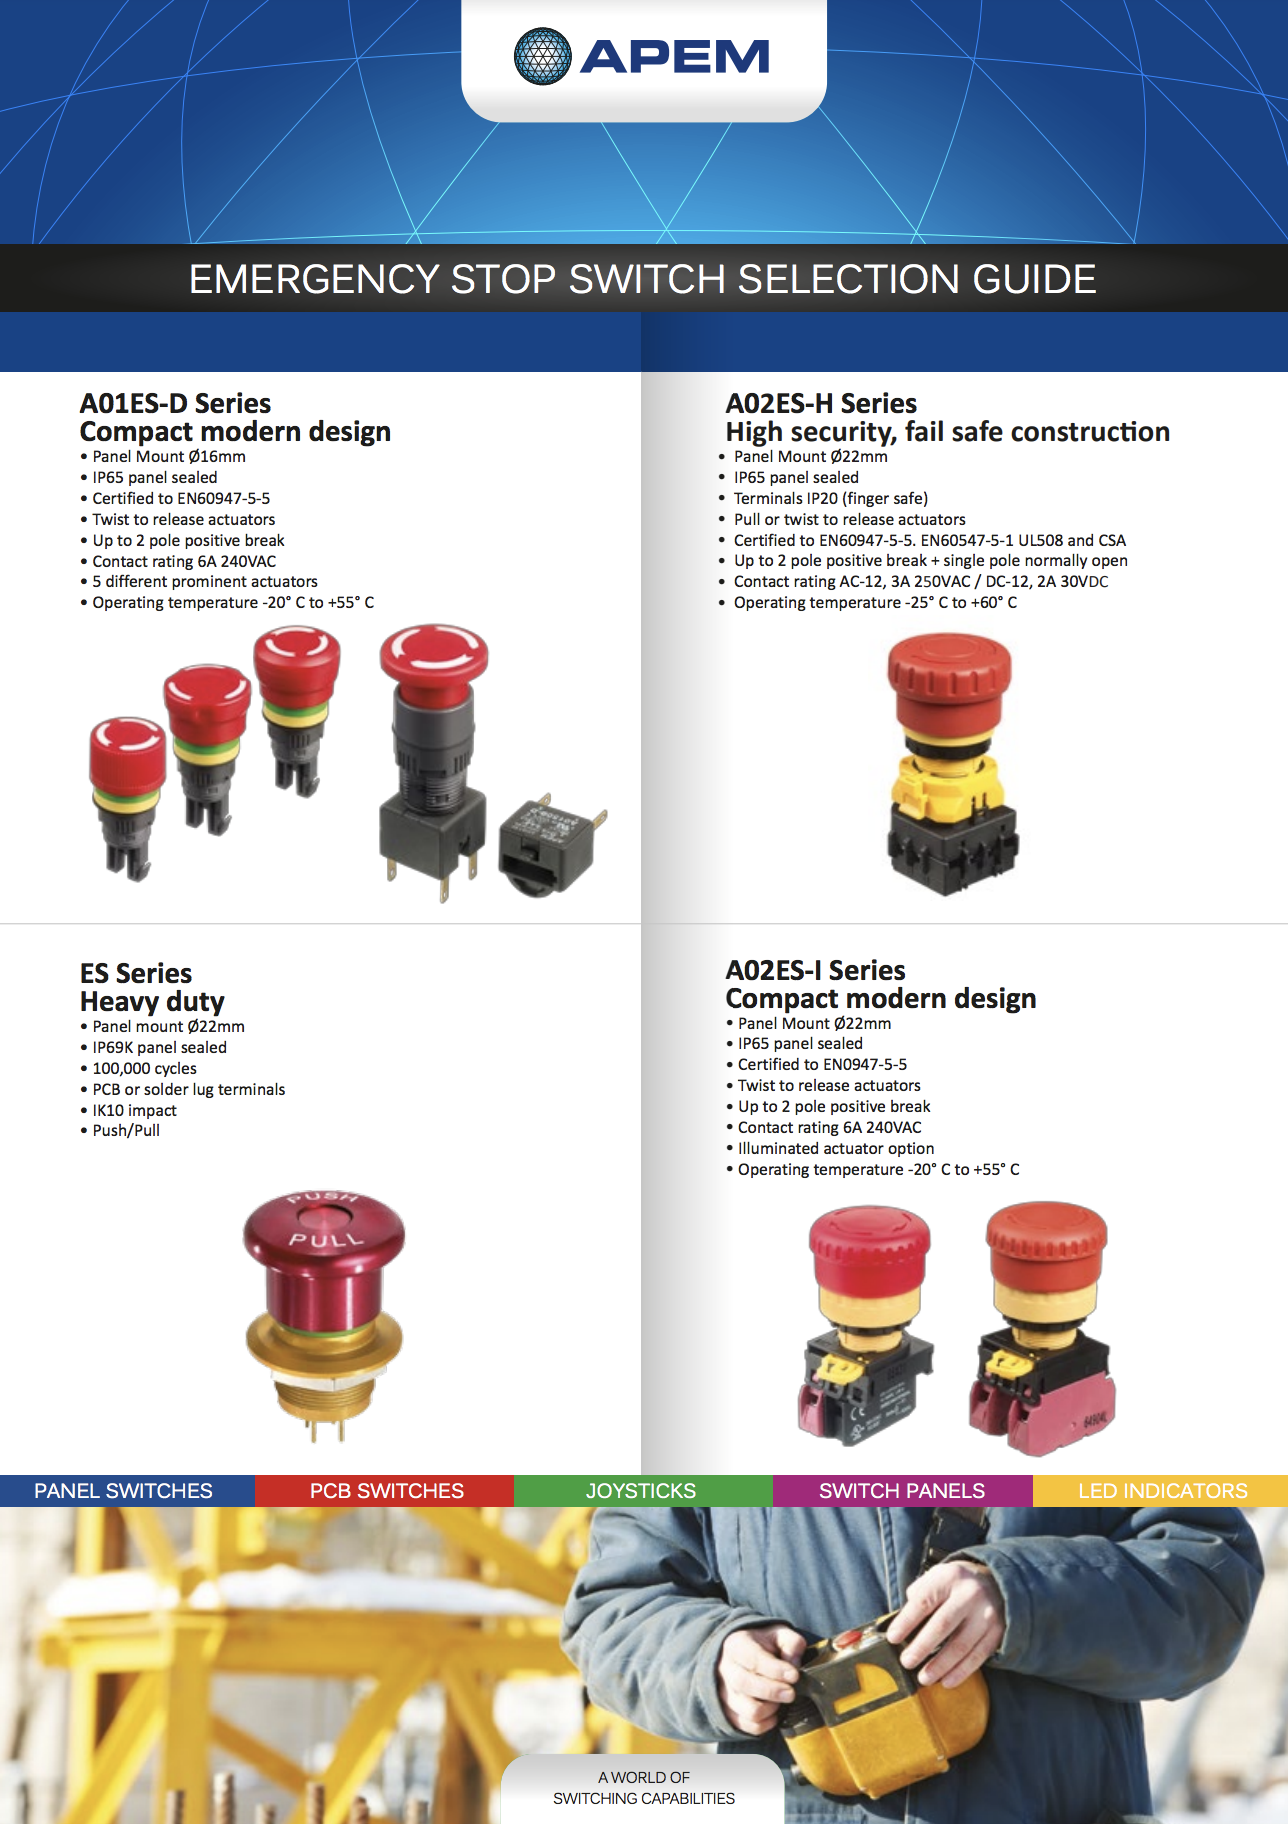 Apem Emergency Stop Selection Guide 2016